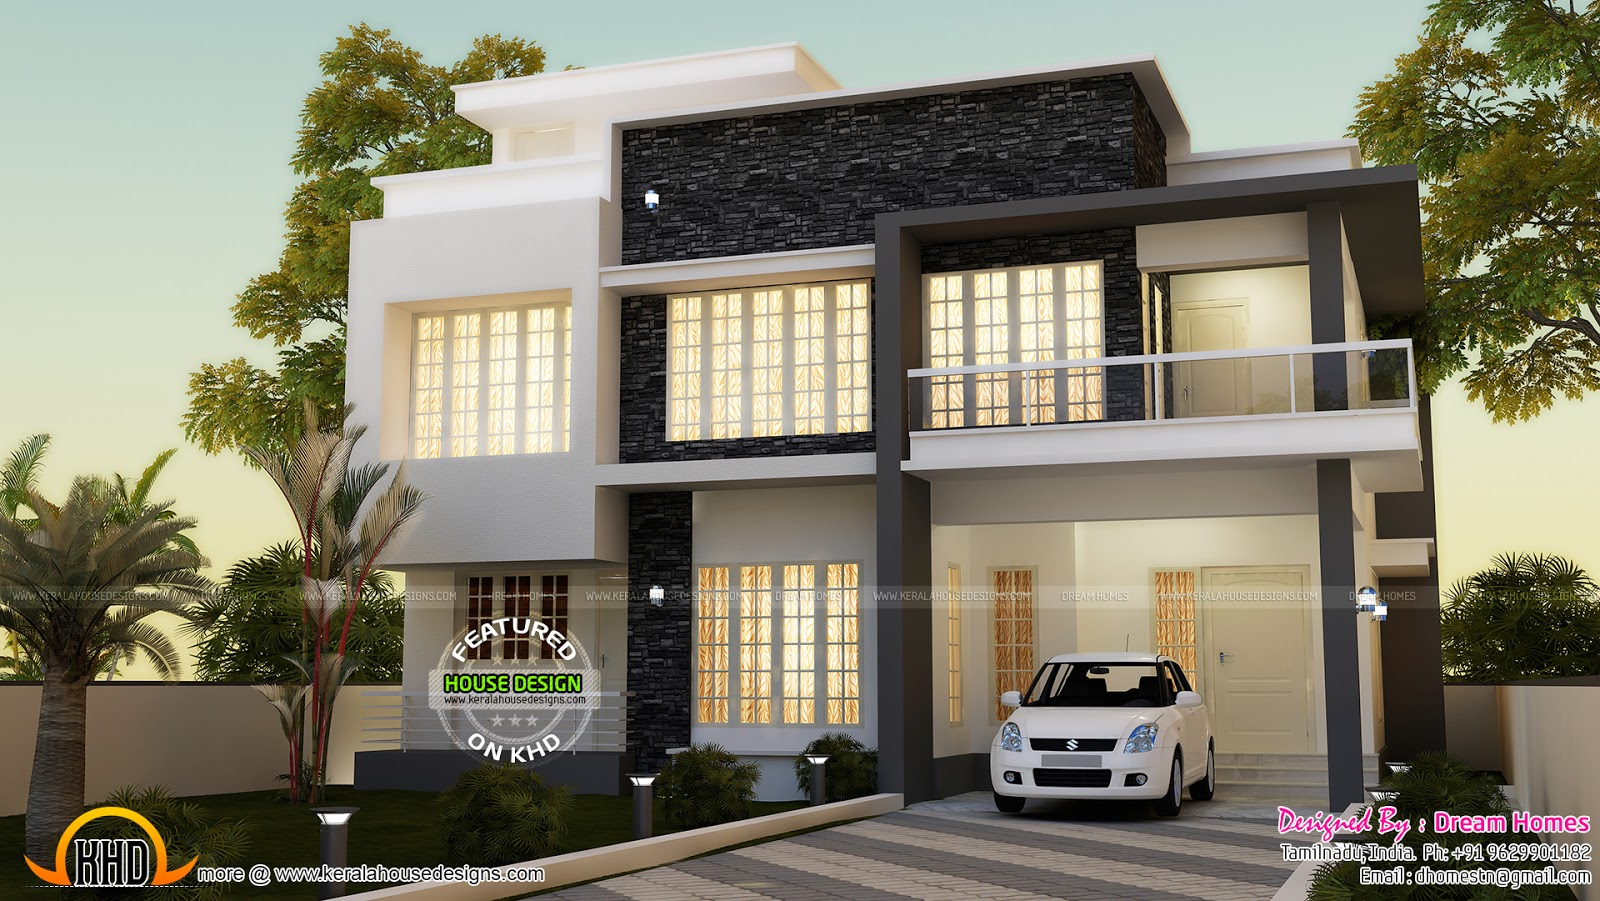 Simple contemporary house and plan kerala home design and floor plans - Contemporary house designs ...